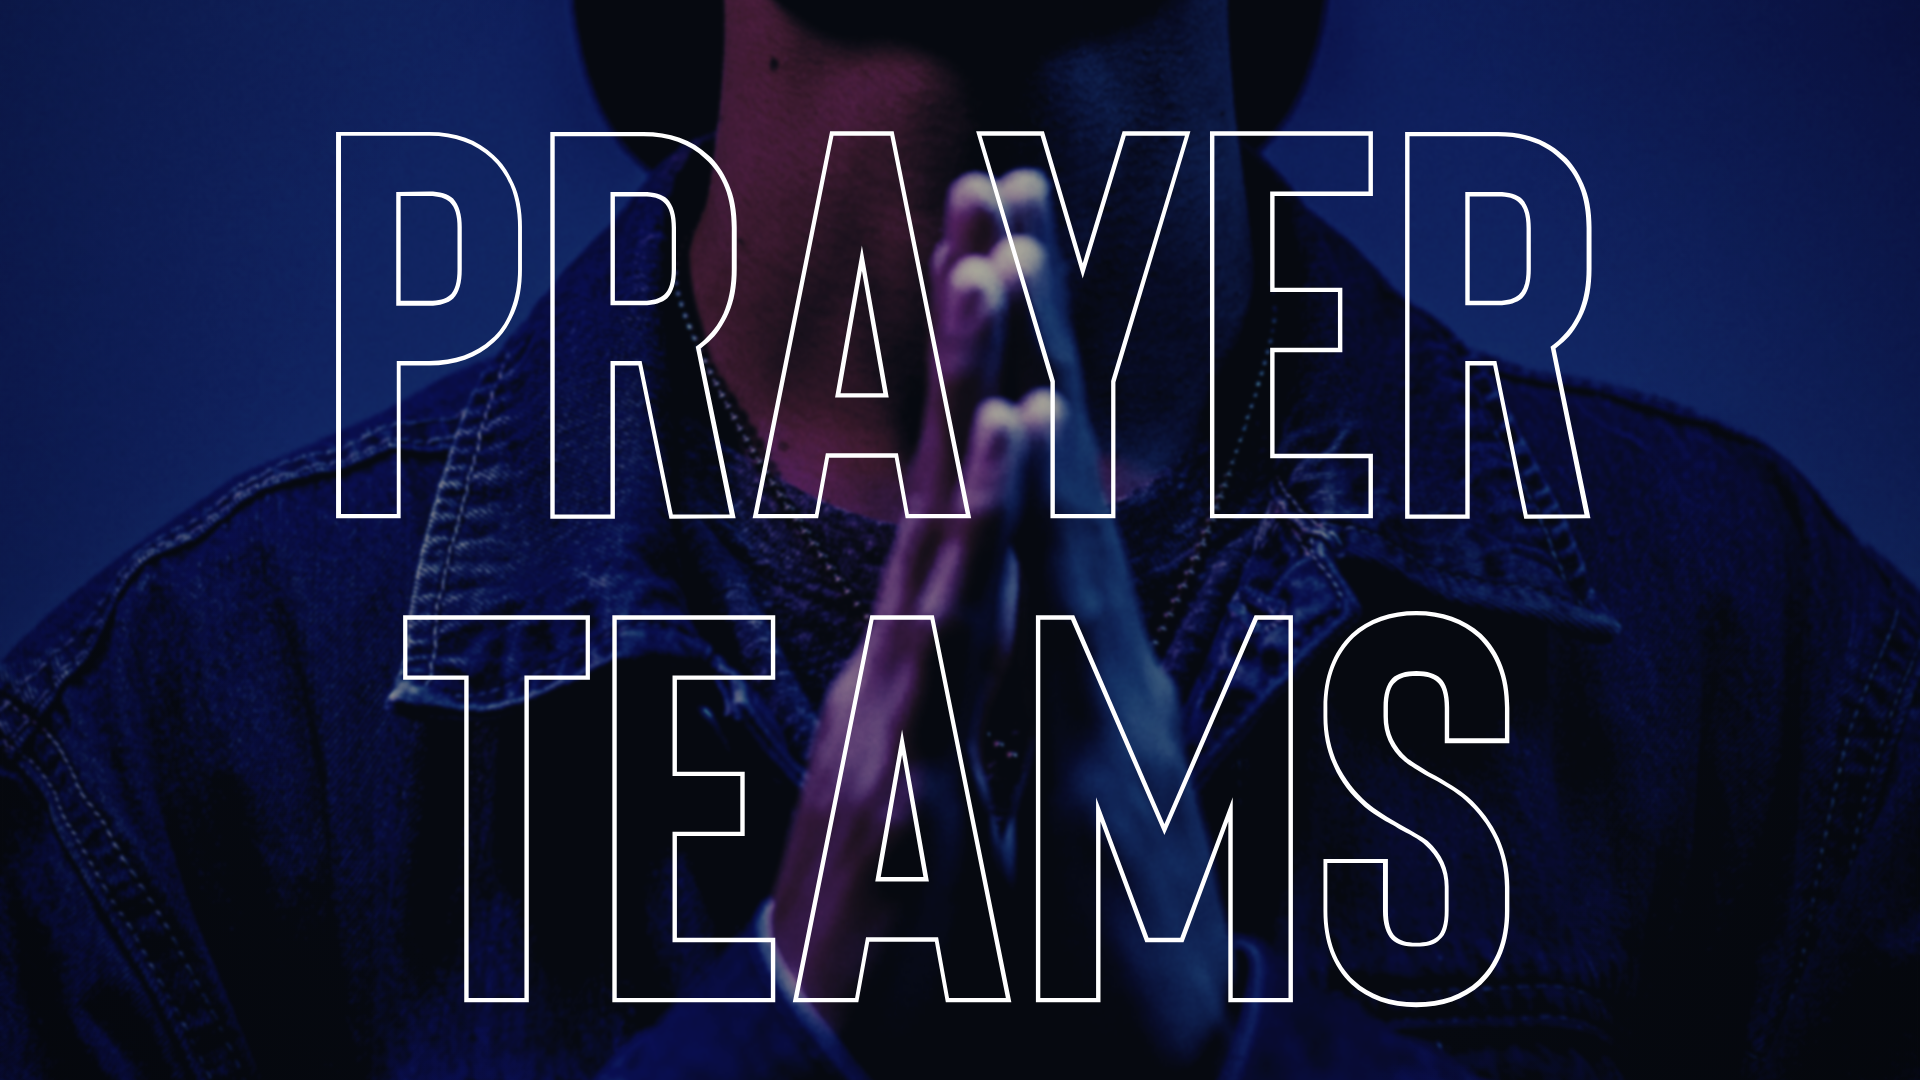 PRAYER TEAMS